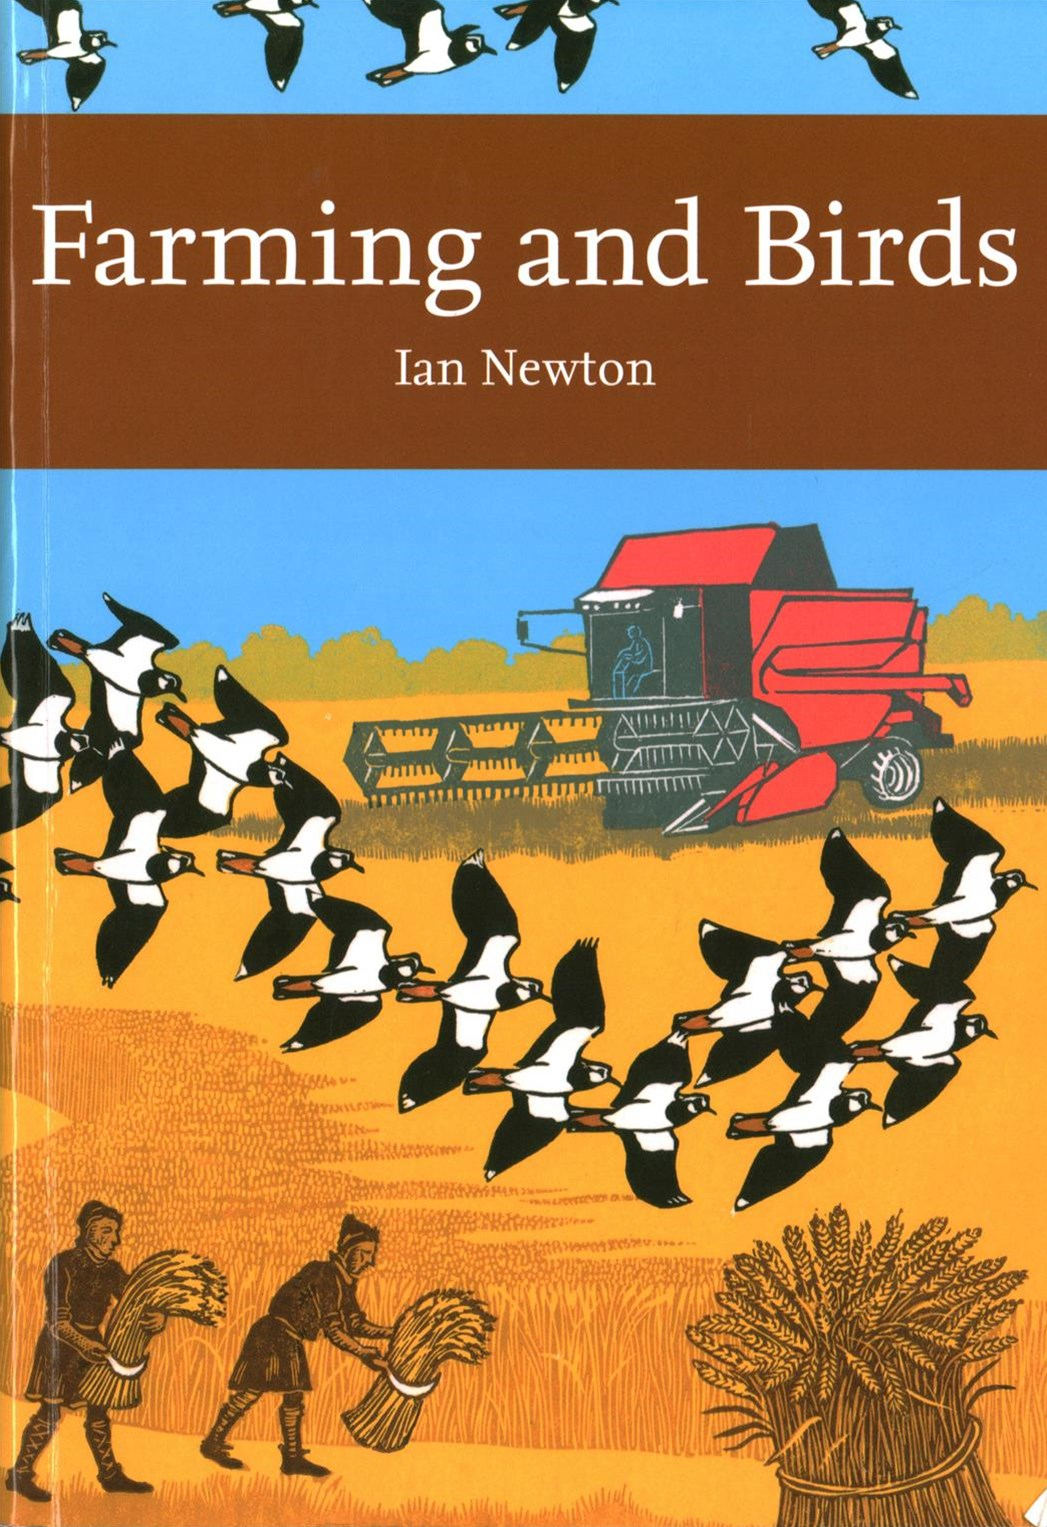 Collins New Naturalist Library - Farming and Birds